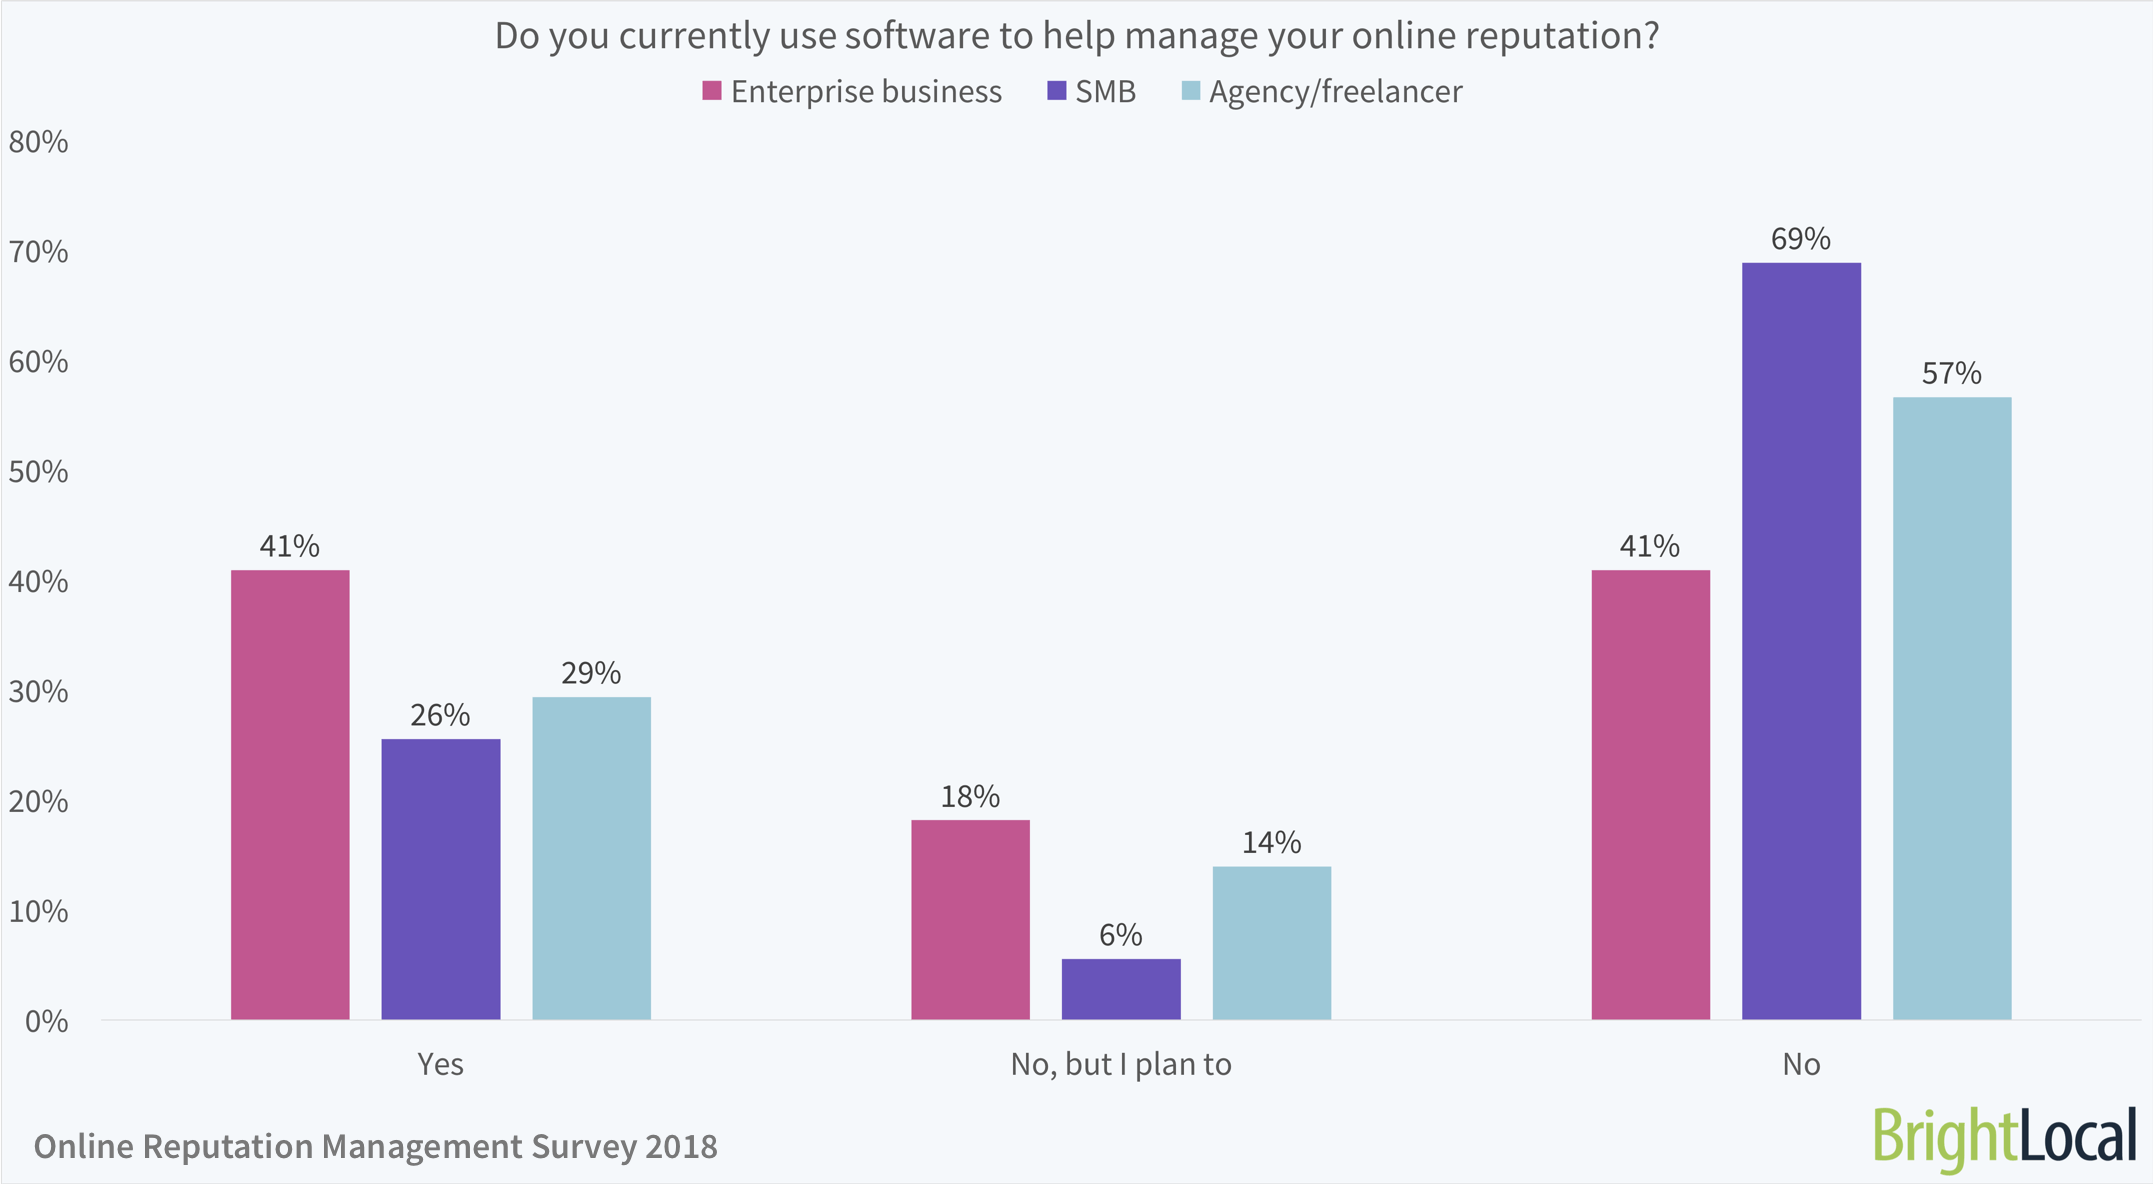 Do you currently use software to help manage your online reputation?